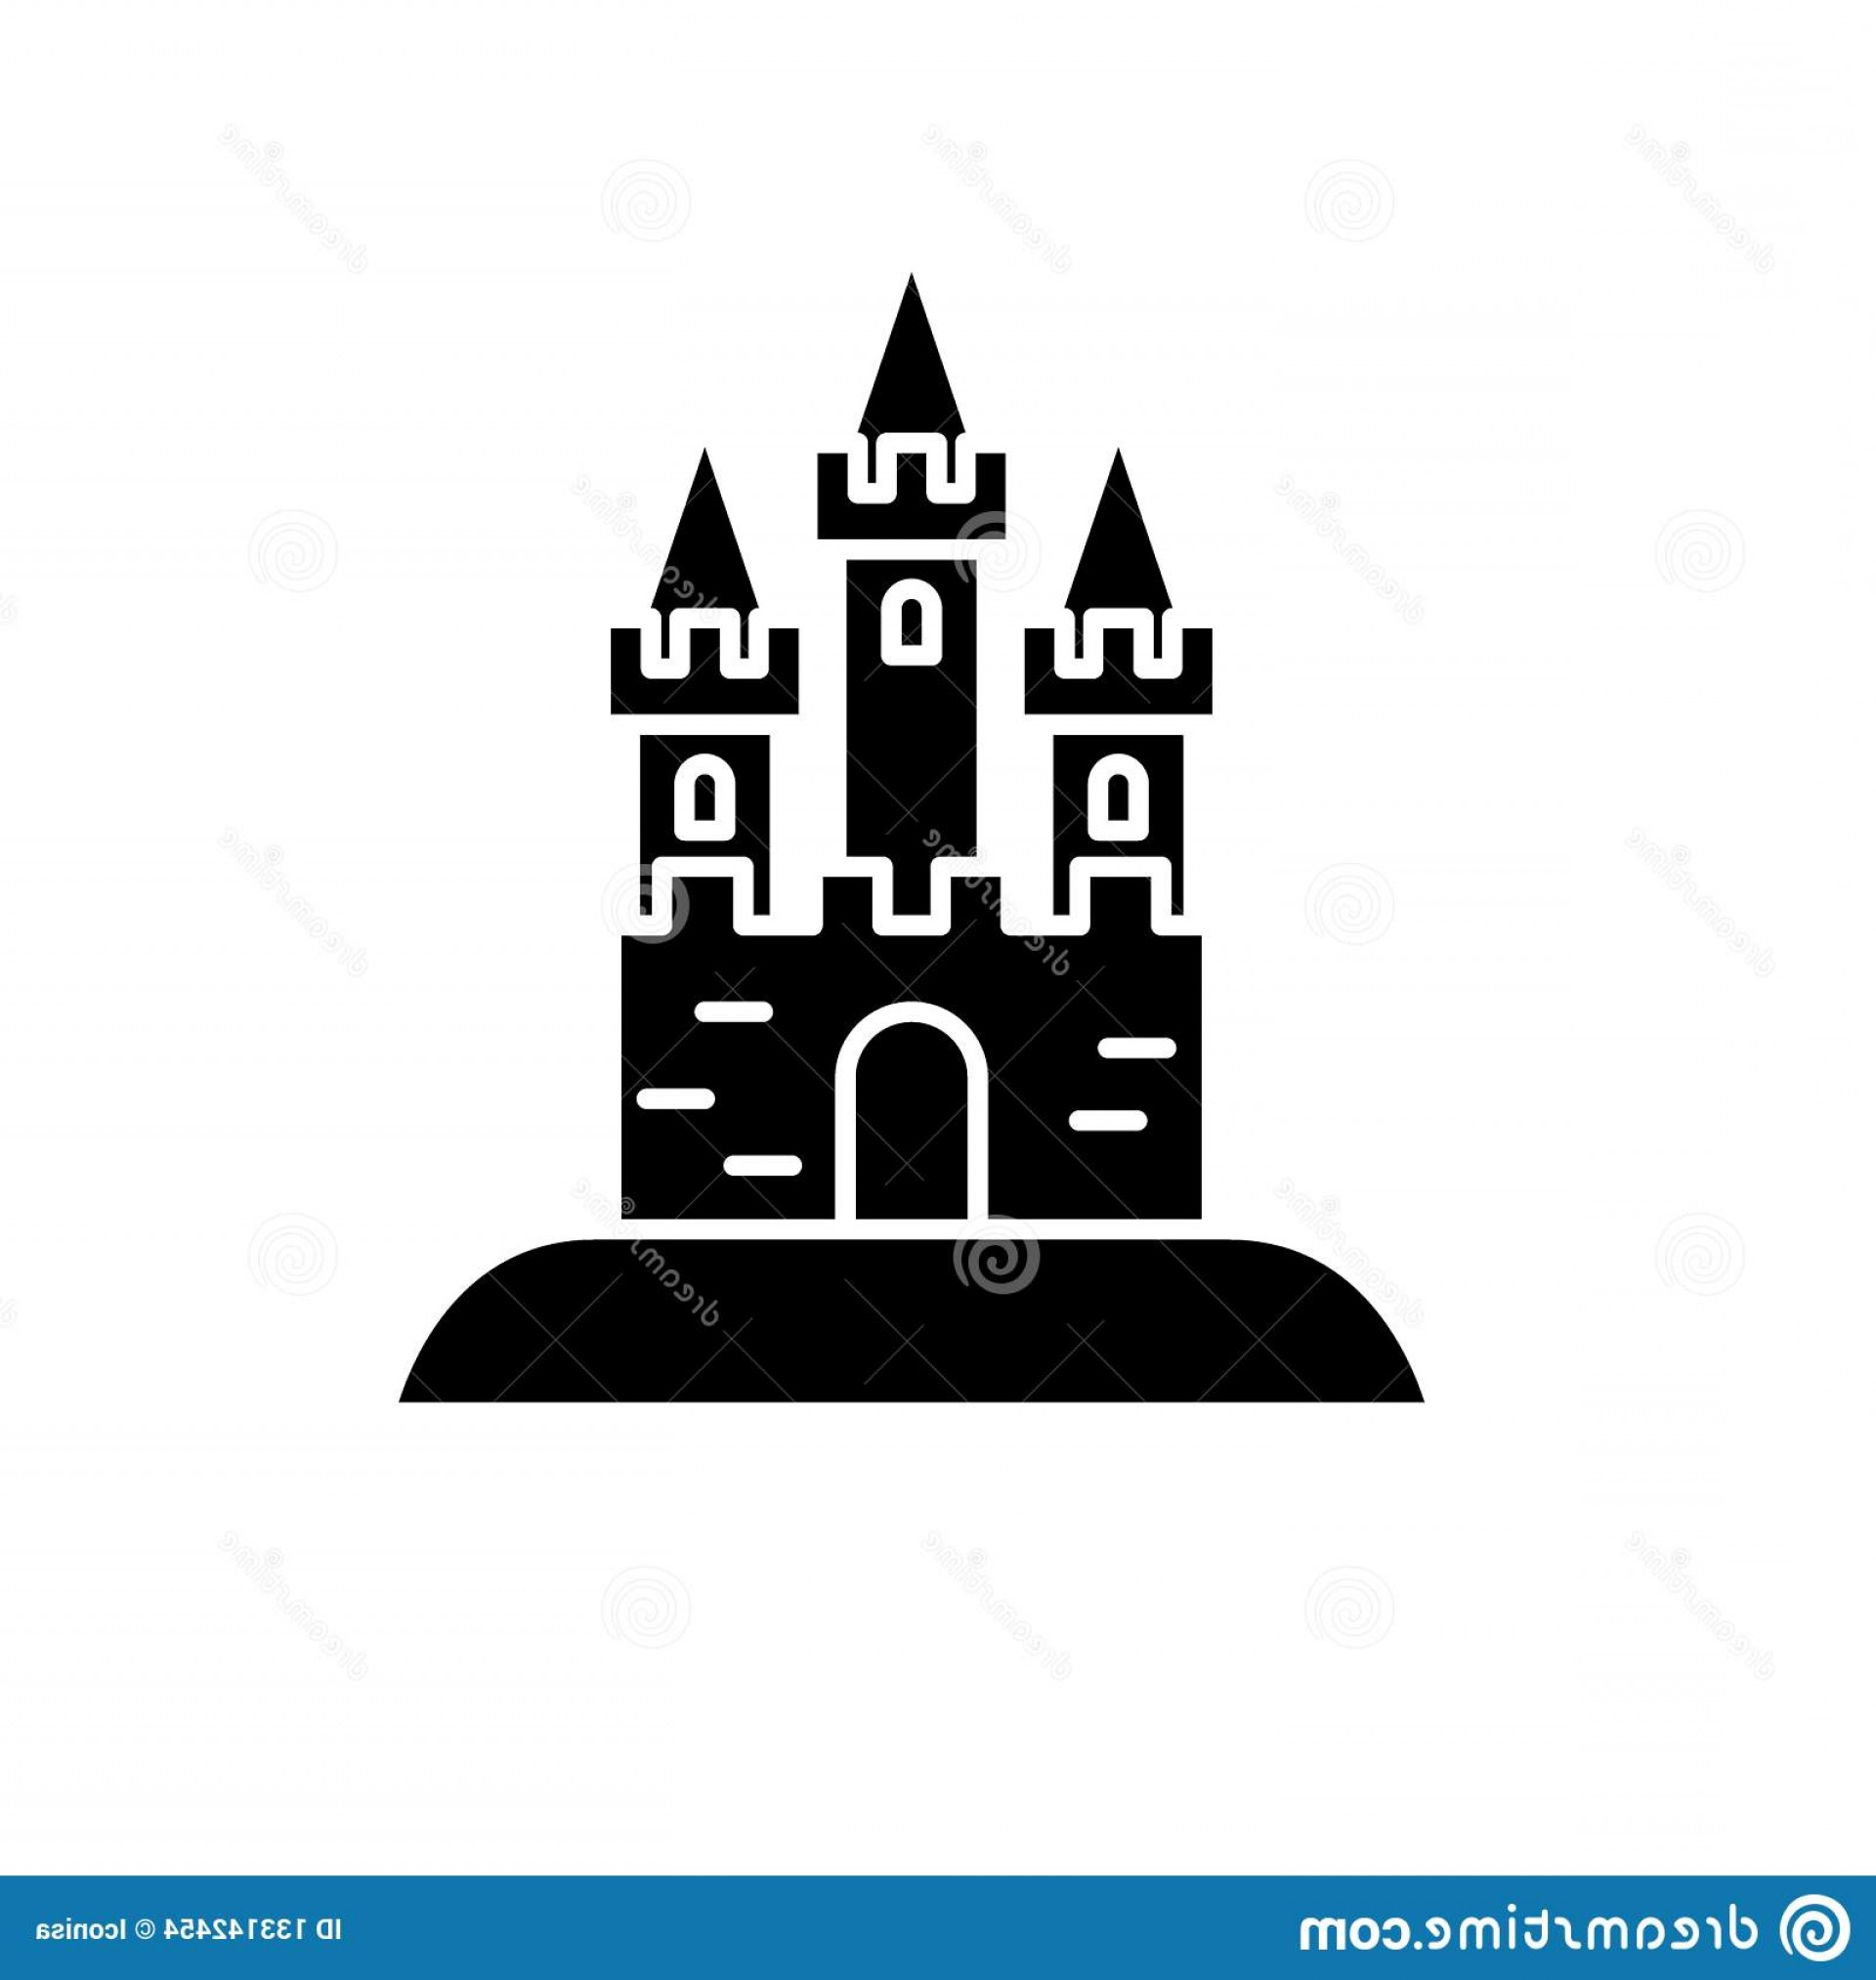 Attraction Icon Vector: Attraction Park Black Icon Vector Sign Isolated Background Attraction Park Concept Symbol Illustration Attraction Park Black Image